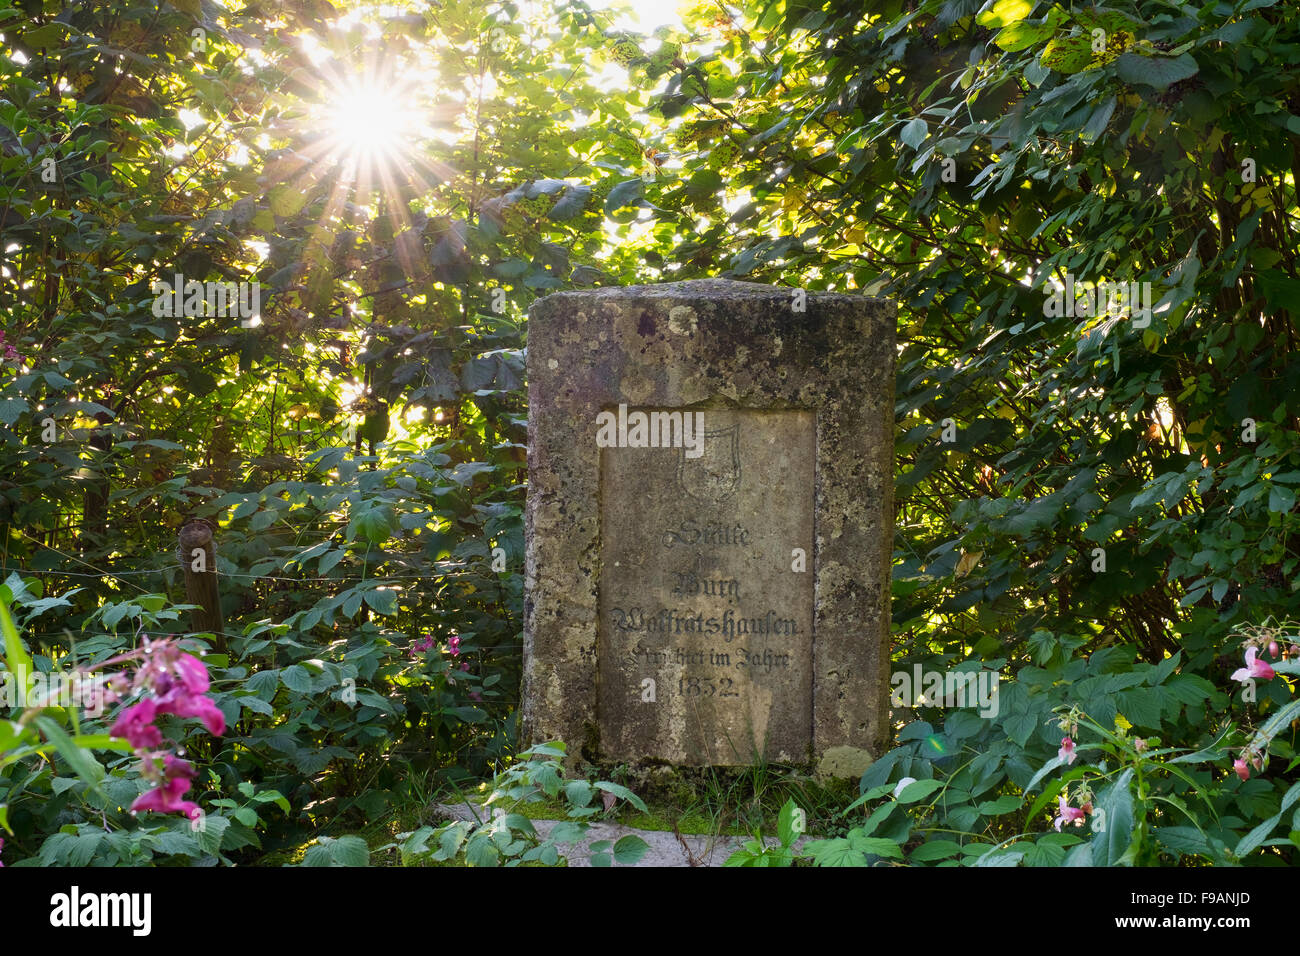 1852 memorial stone at the location of the former castle, Wolfratshausen, Upper Bavaria, Bavaria, Germany - Stock Image